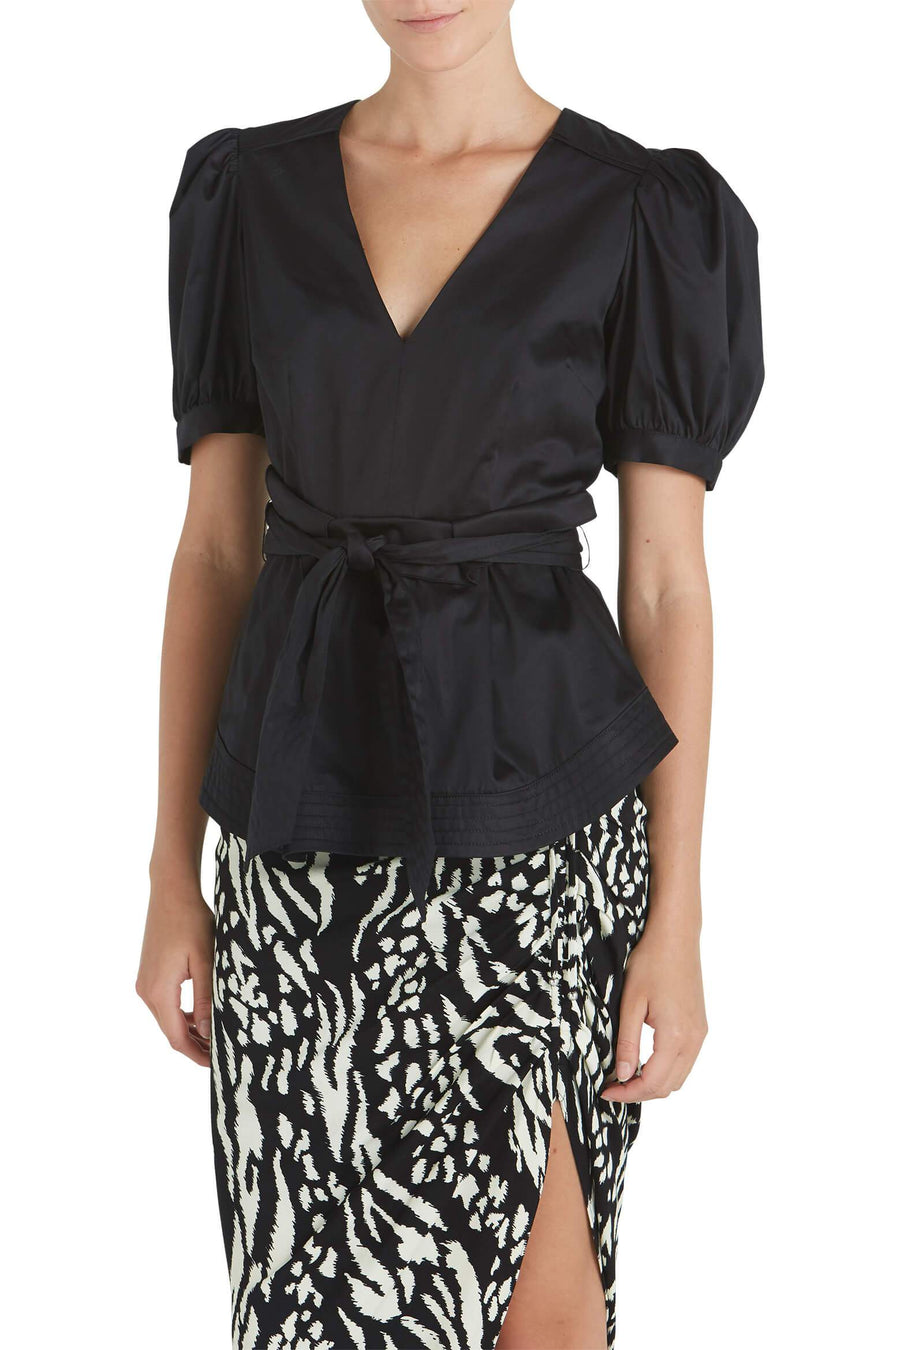 Veronica Beard Aslan Peplum Top in Black from The New Trend